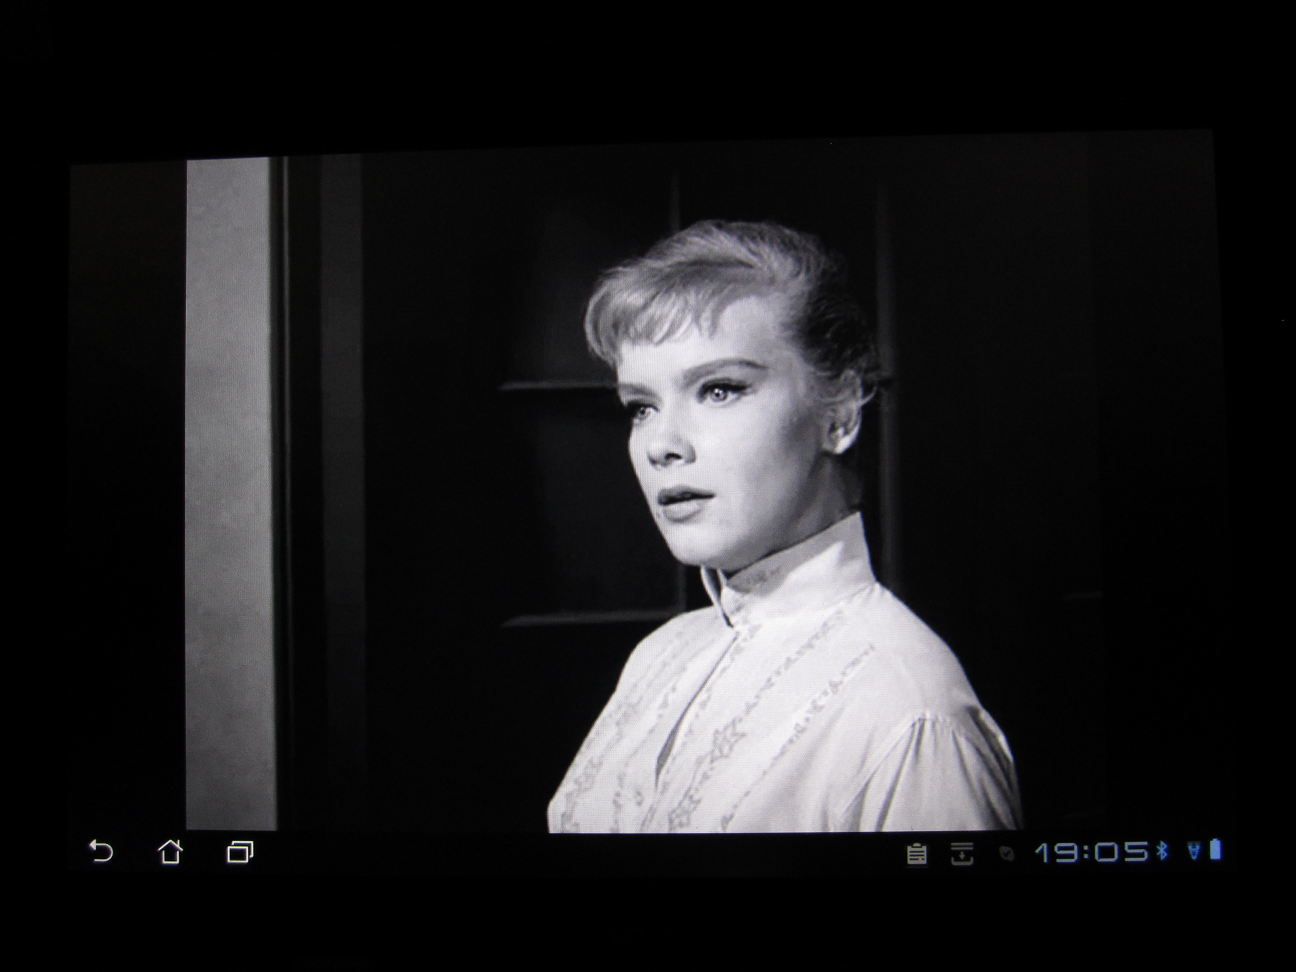 Anne Francis Twilight Zone Mannequin - Bing images